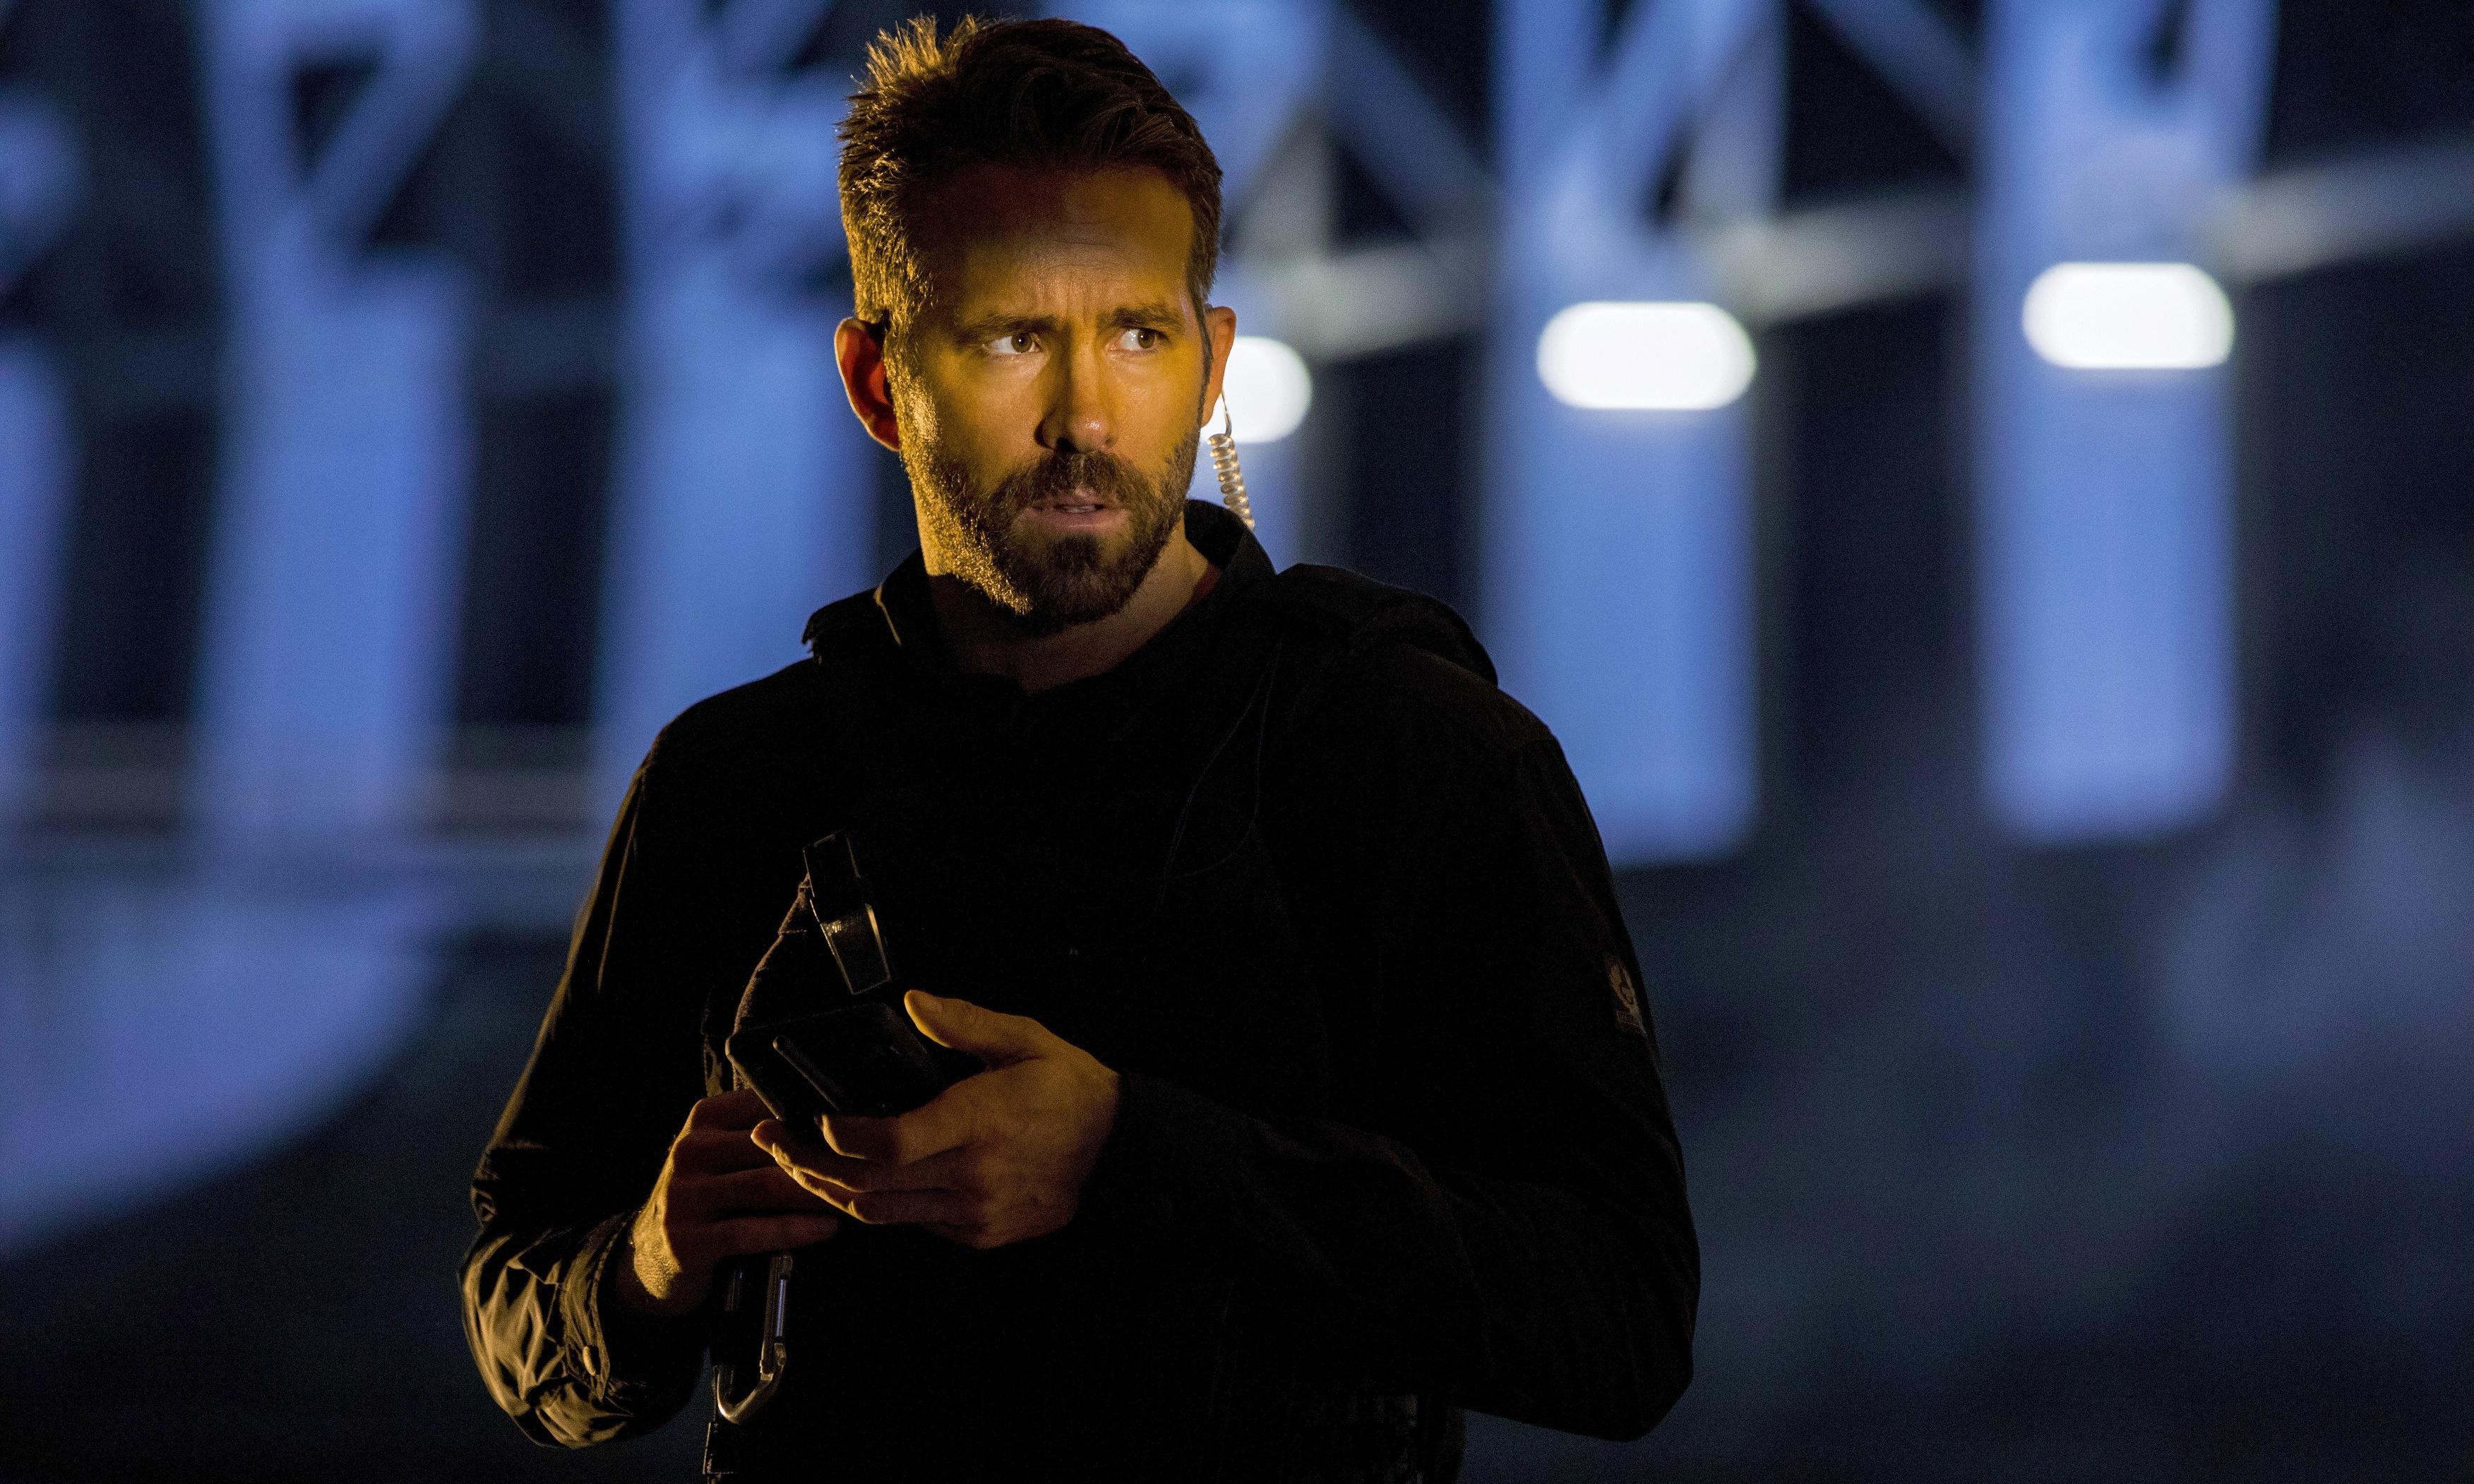 6 Underground review – Michael Bay's high-octane caper is a blast